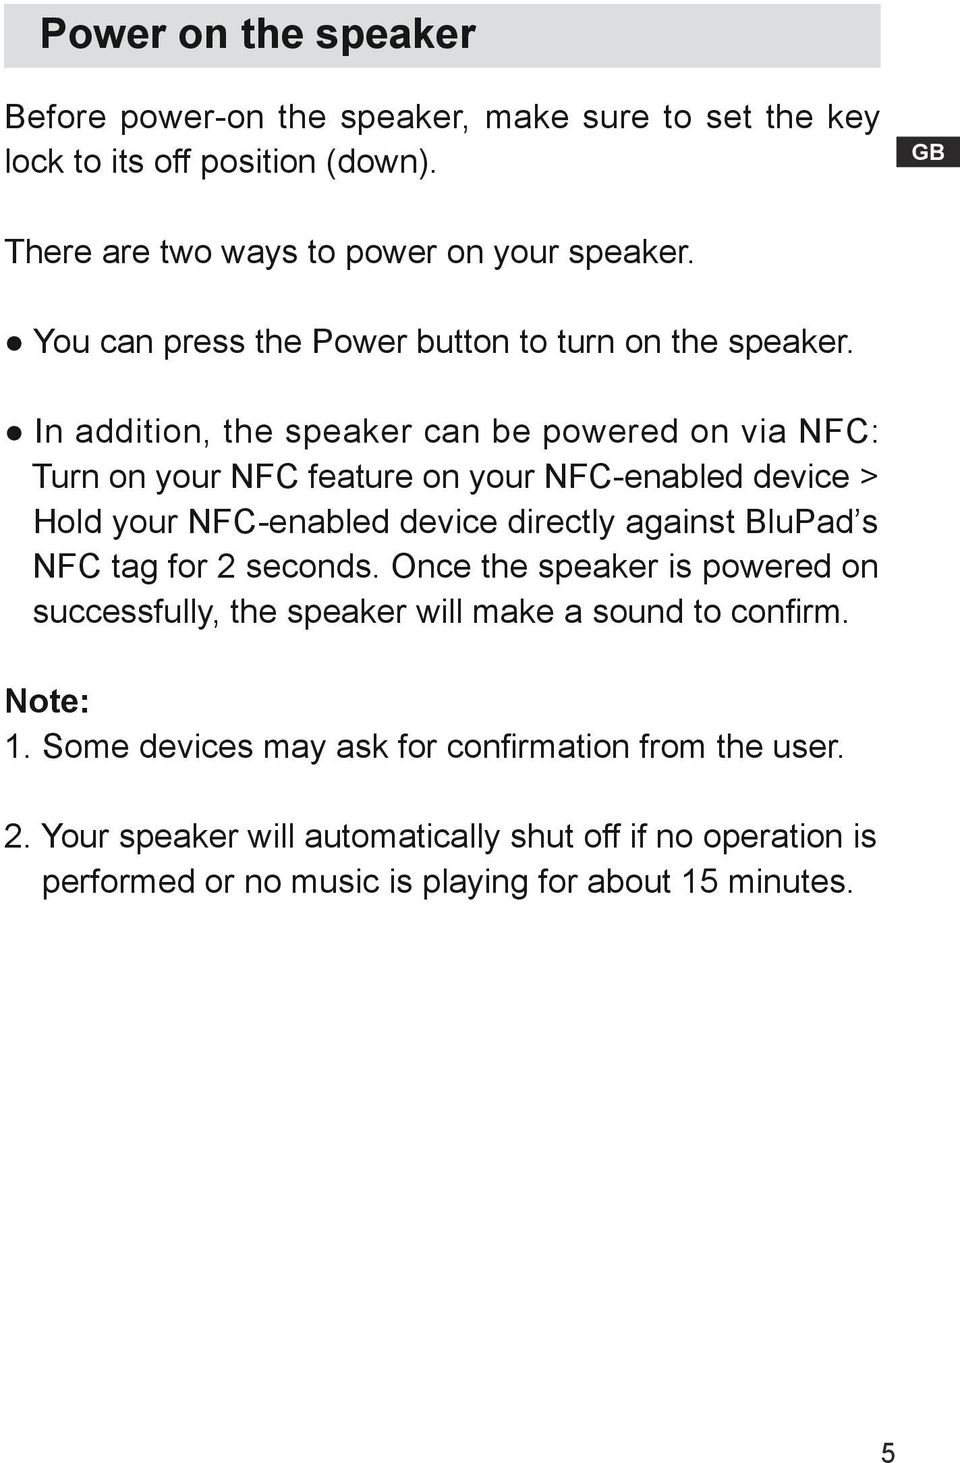 In addition, the speaker can be powered on via NFC: Turn on your NFC feature on your NFC-enabled device > Hold your NFC-enabled device directly against BluPad s NFC